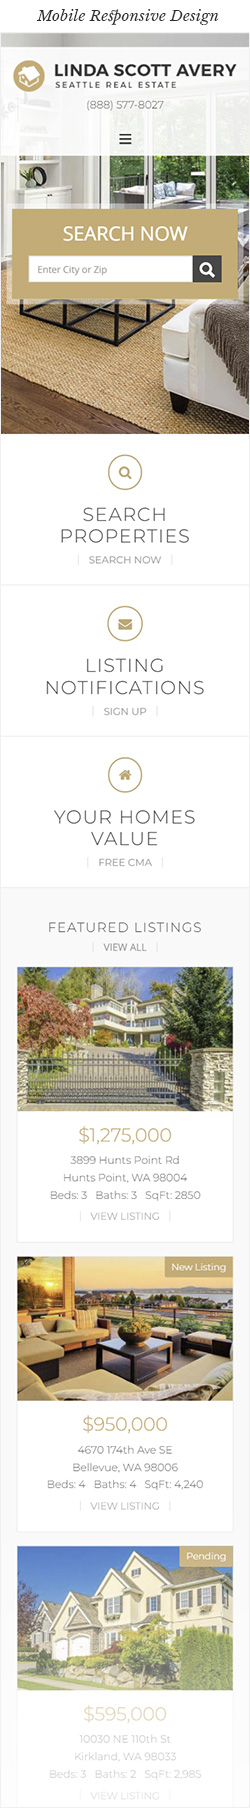 Seattle Real Estate Website Mobile Responsive